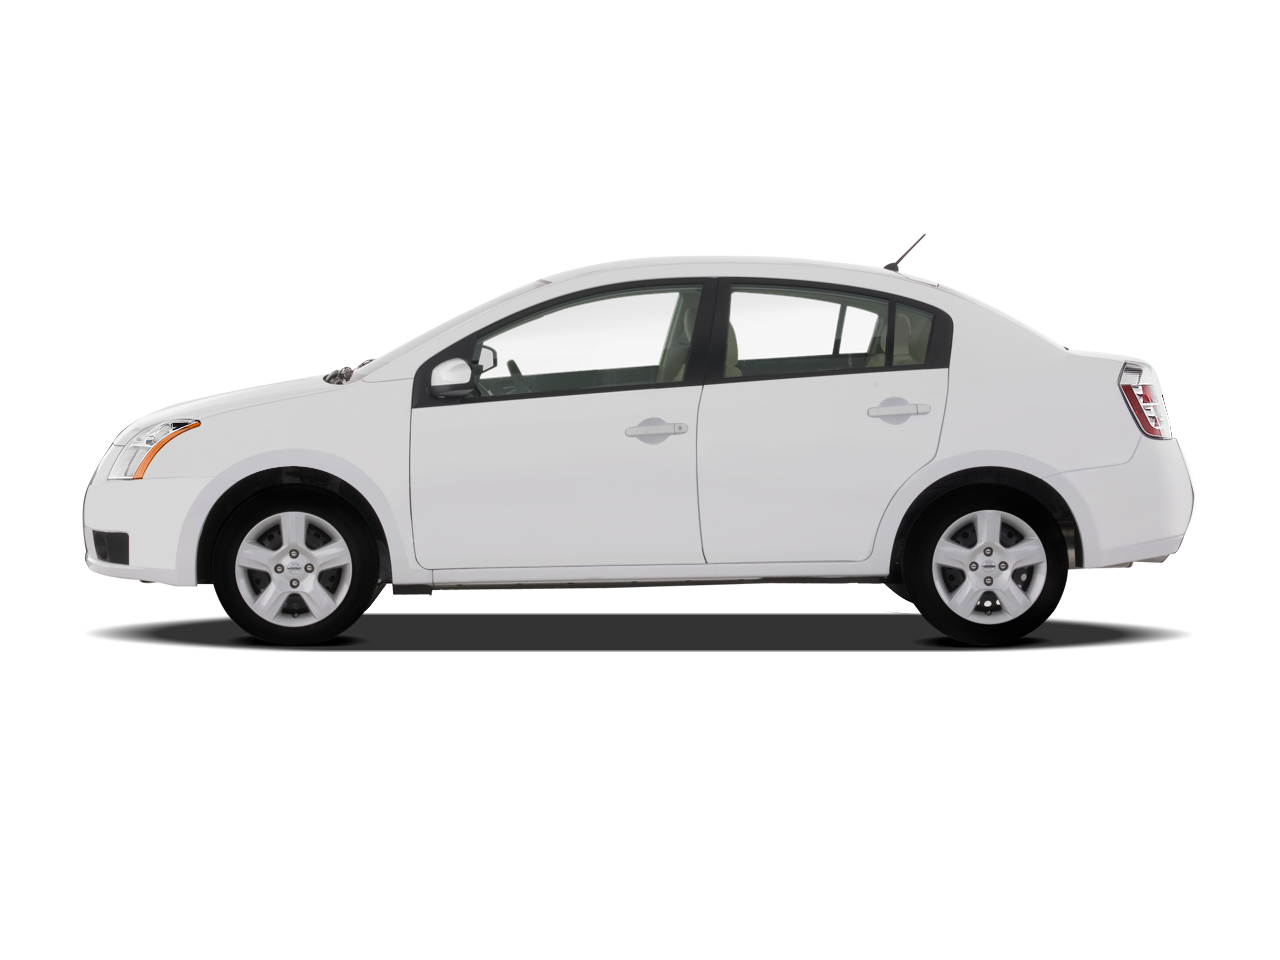 2007 Nissan Sentra New Car Truck And Suv Road Tests